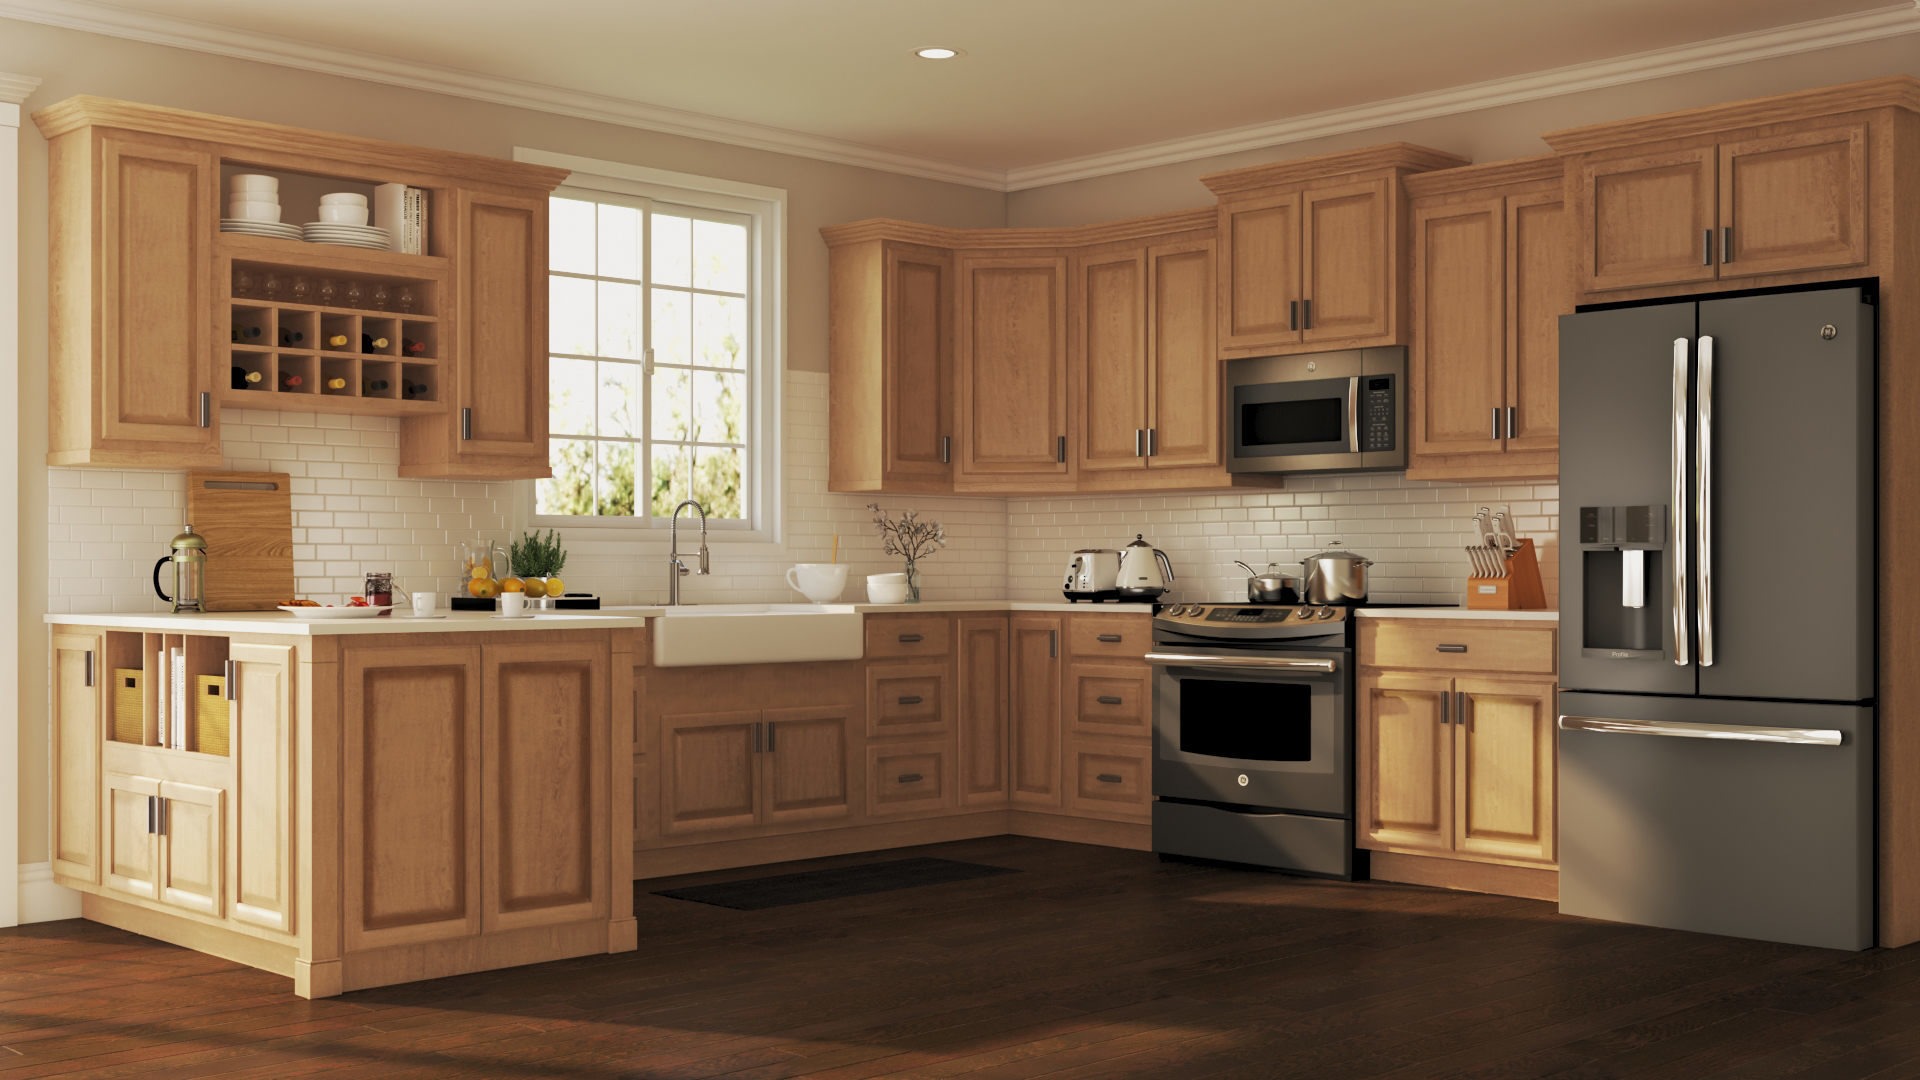 Hampton Wall Kitchen Cabinets In Medium Oak Kitchen The